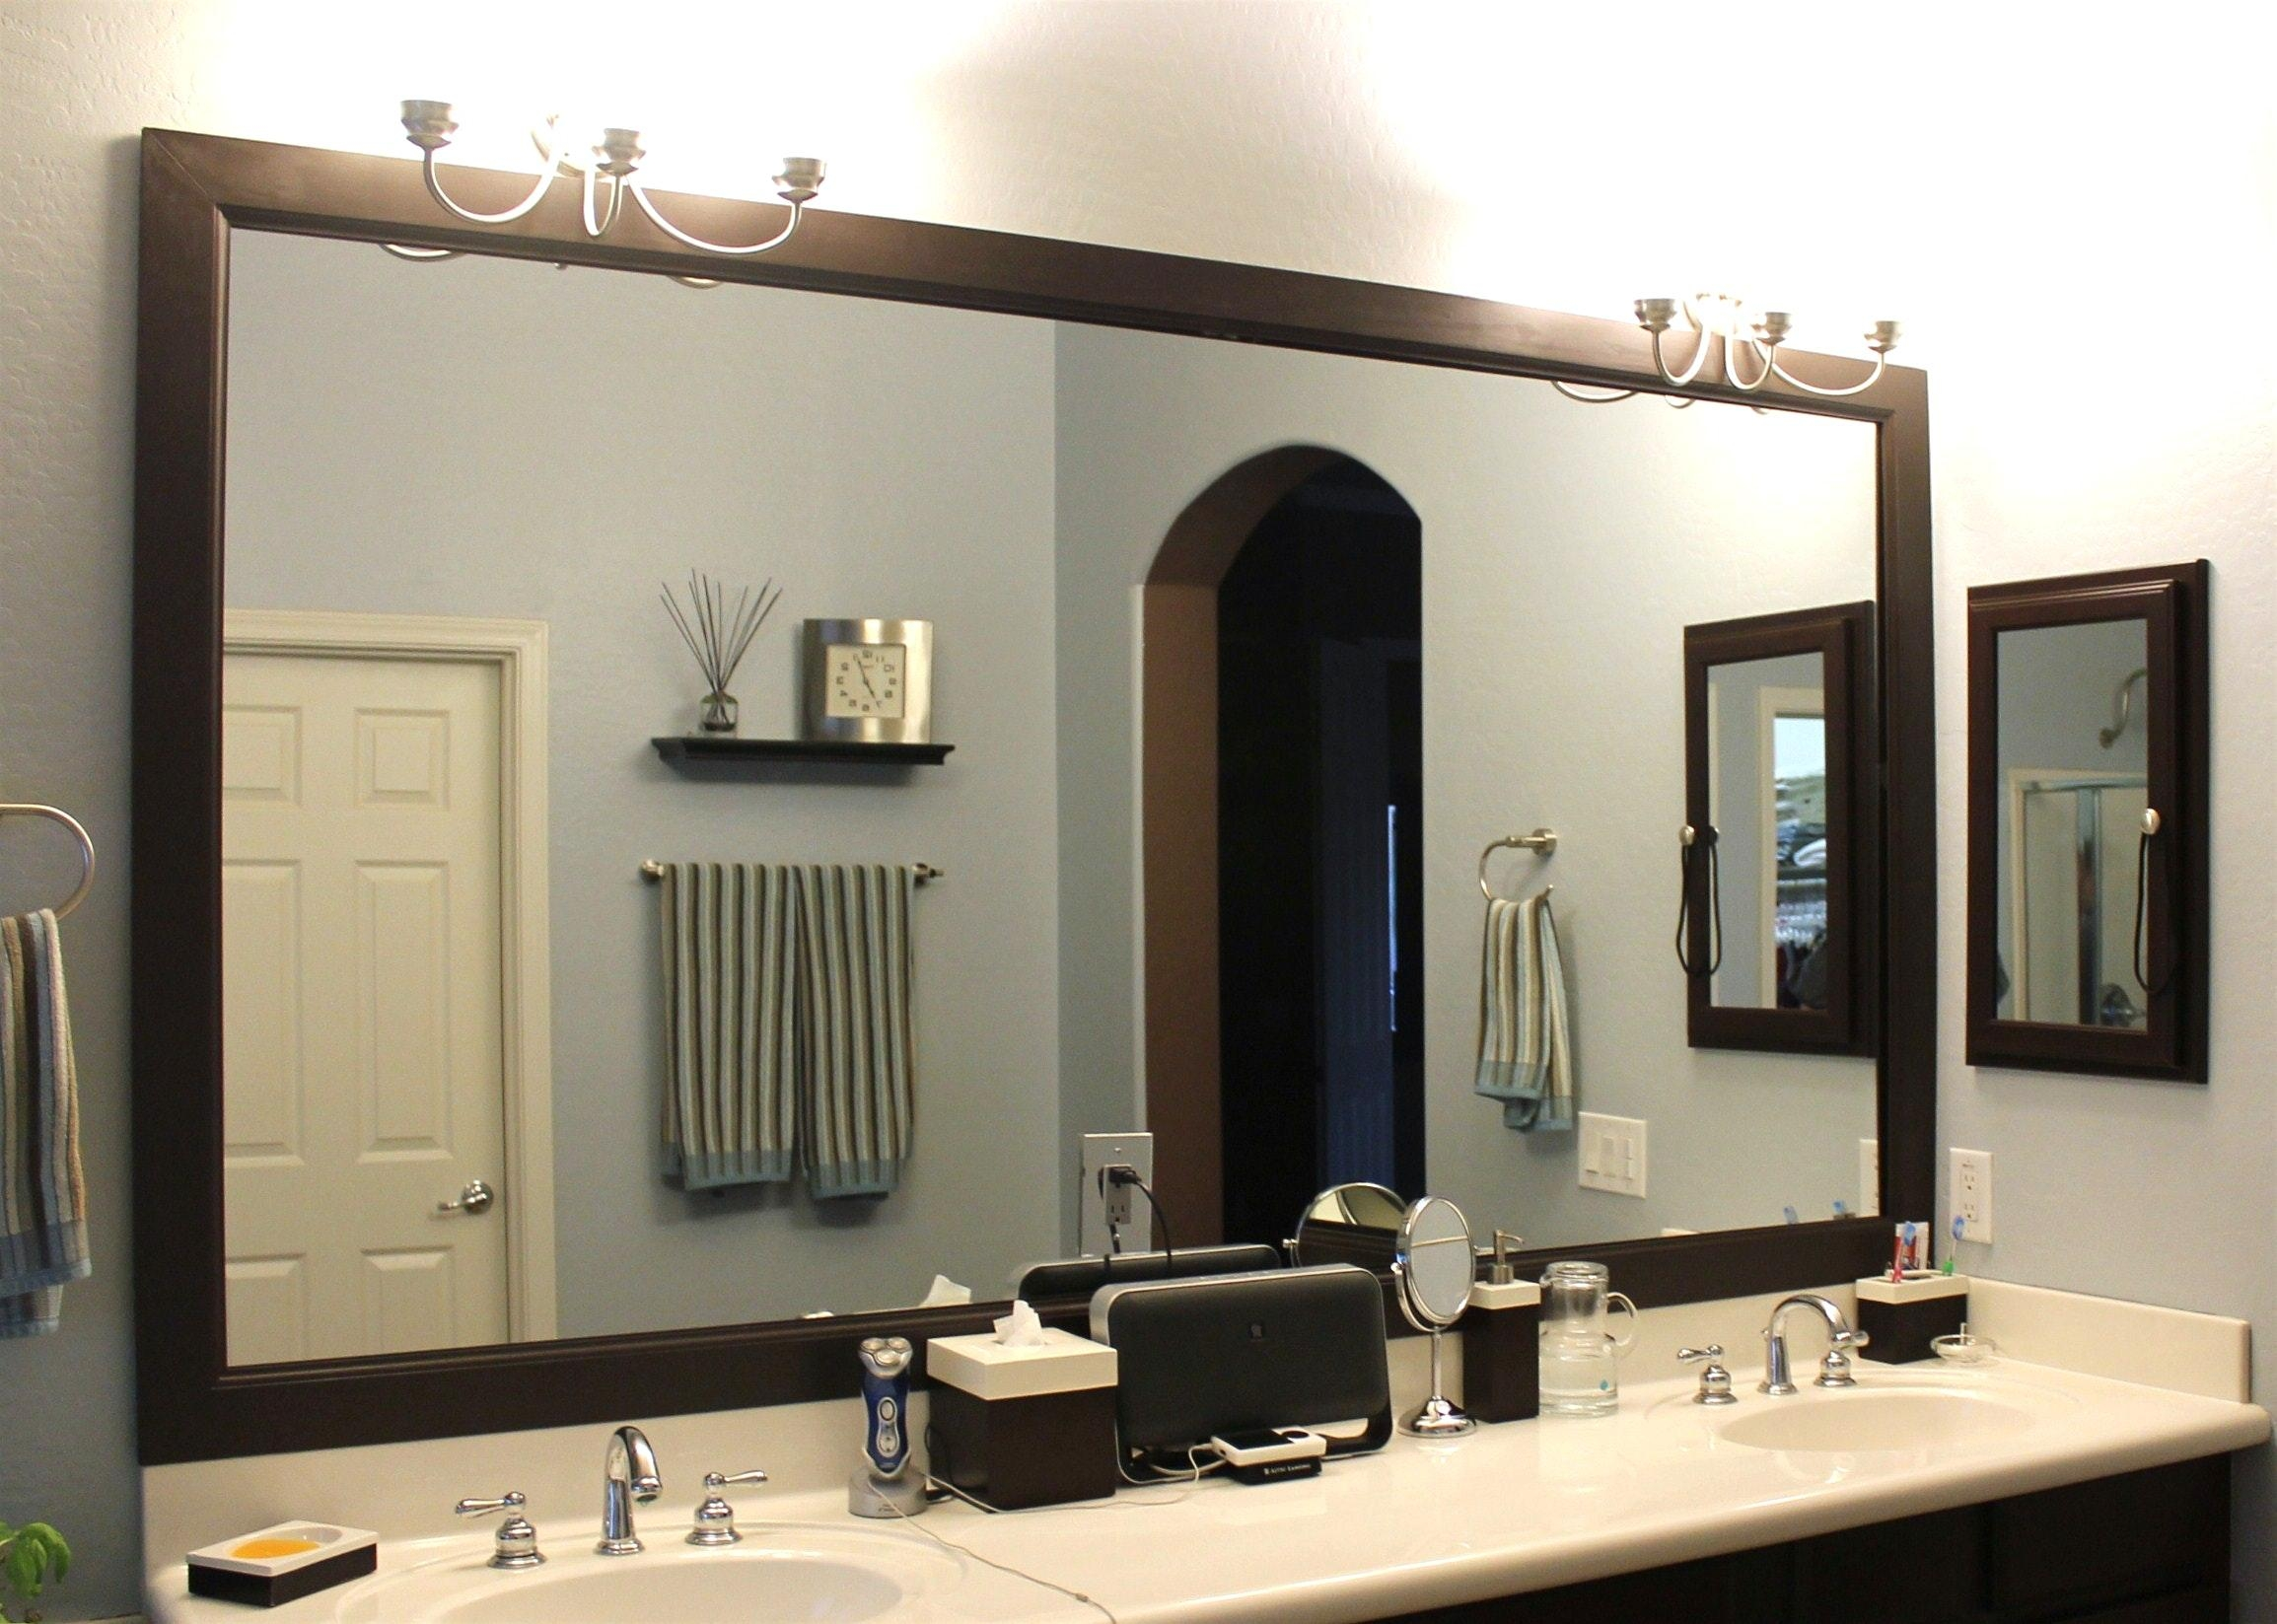 Custom Bathroom Mirror Frames Making At | Birdcages With Regard To Custom Bathroom Mirrors (Image 10 of 20)